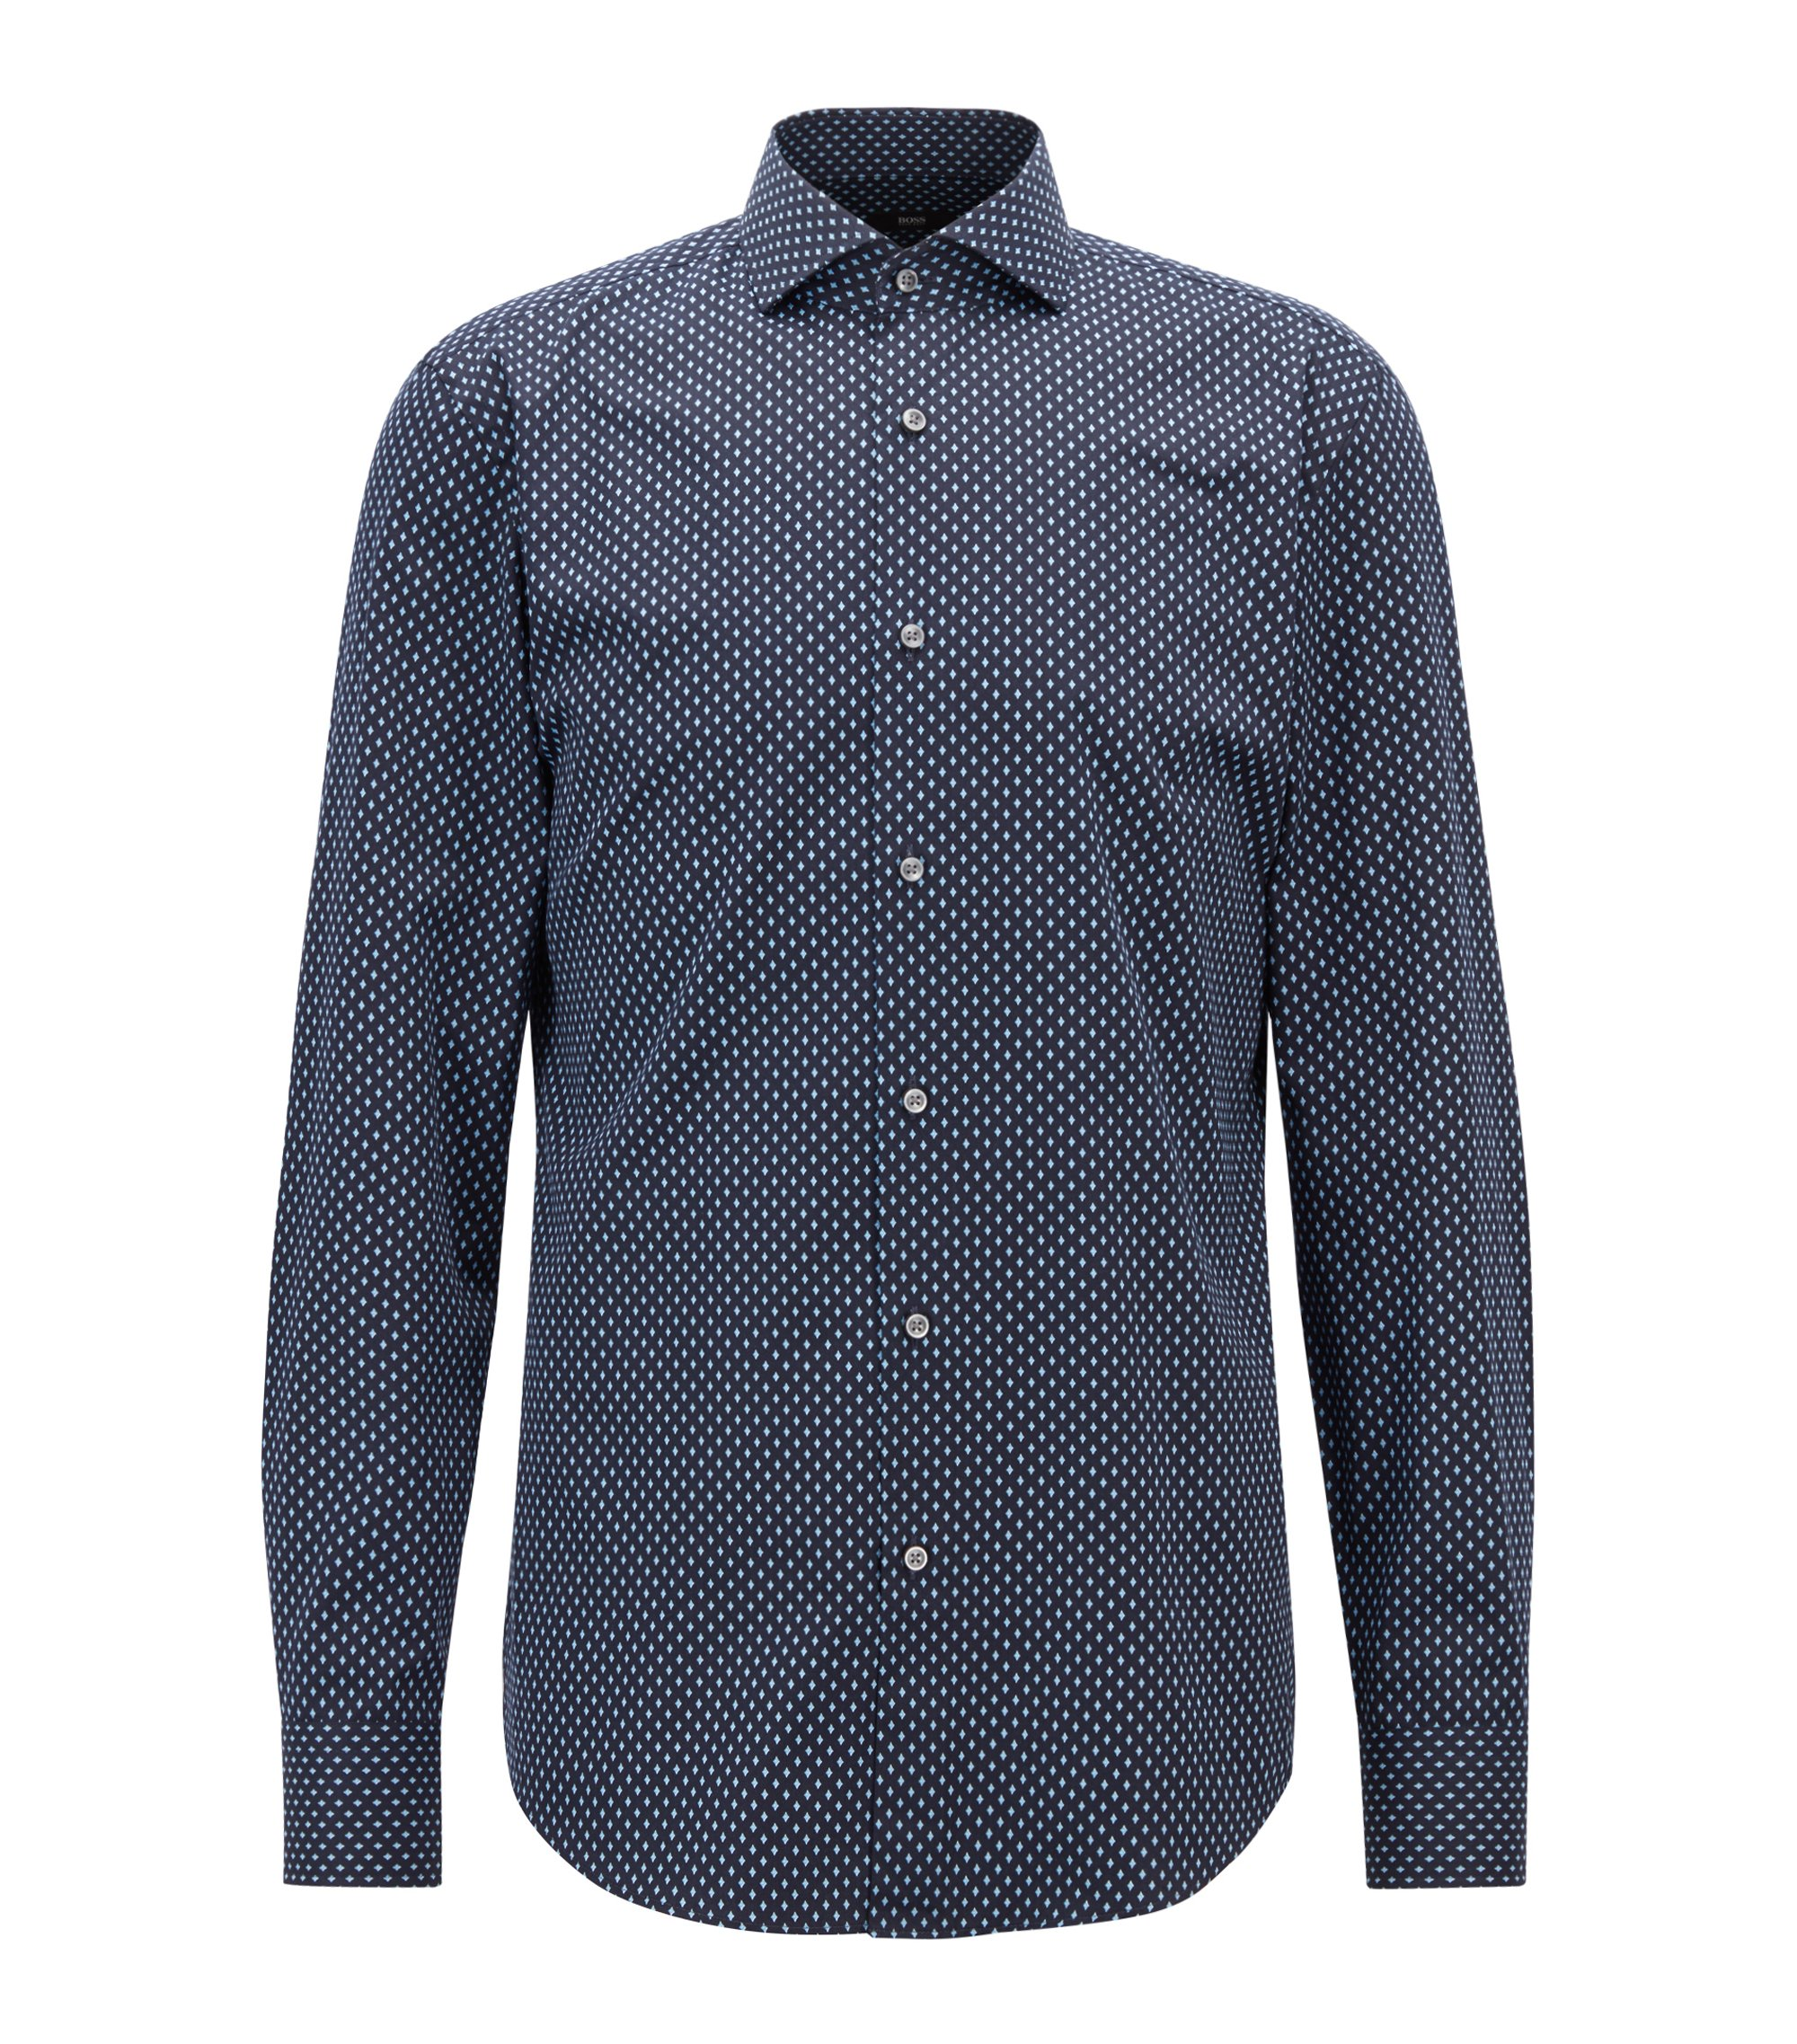 Slim-fit shirt in rhombus-print Italian cotton satin, Patterned